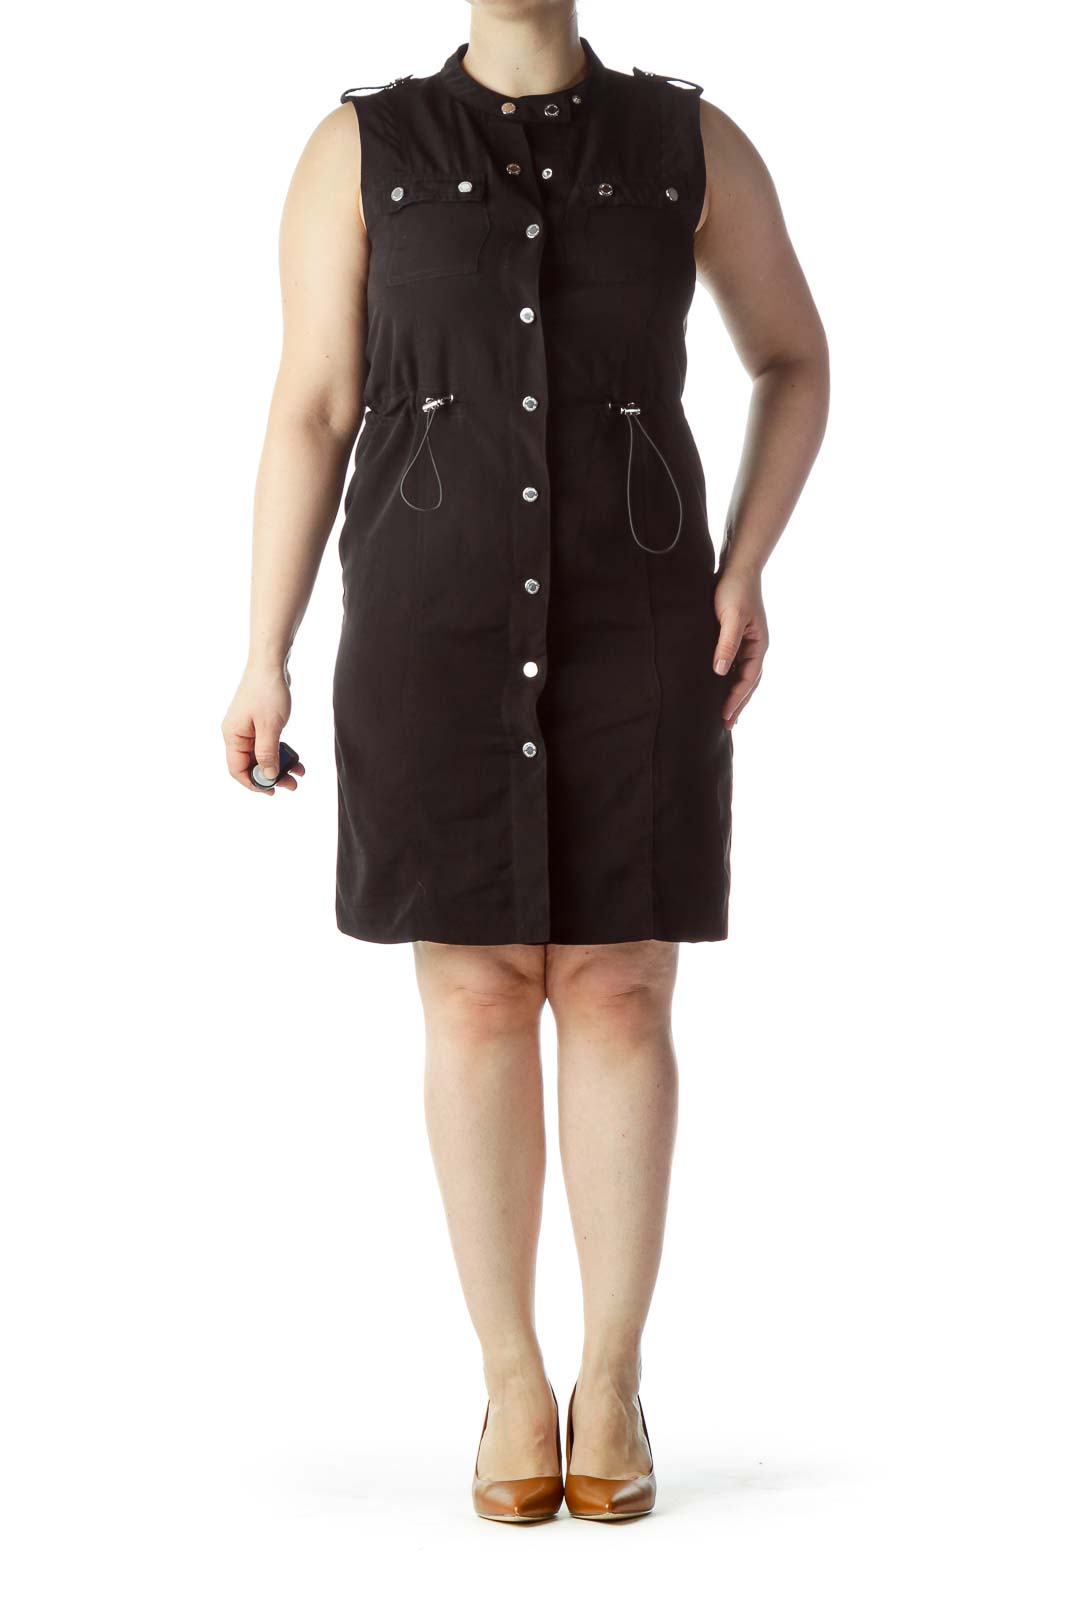 Black Snap Buttoned Sleeveless Dress